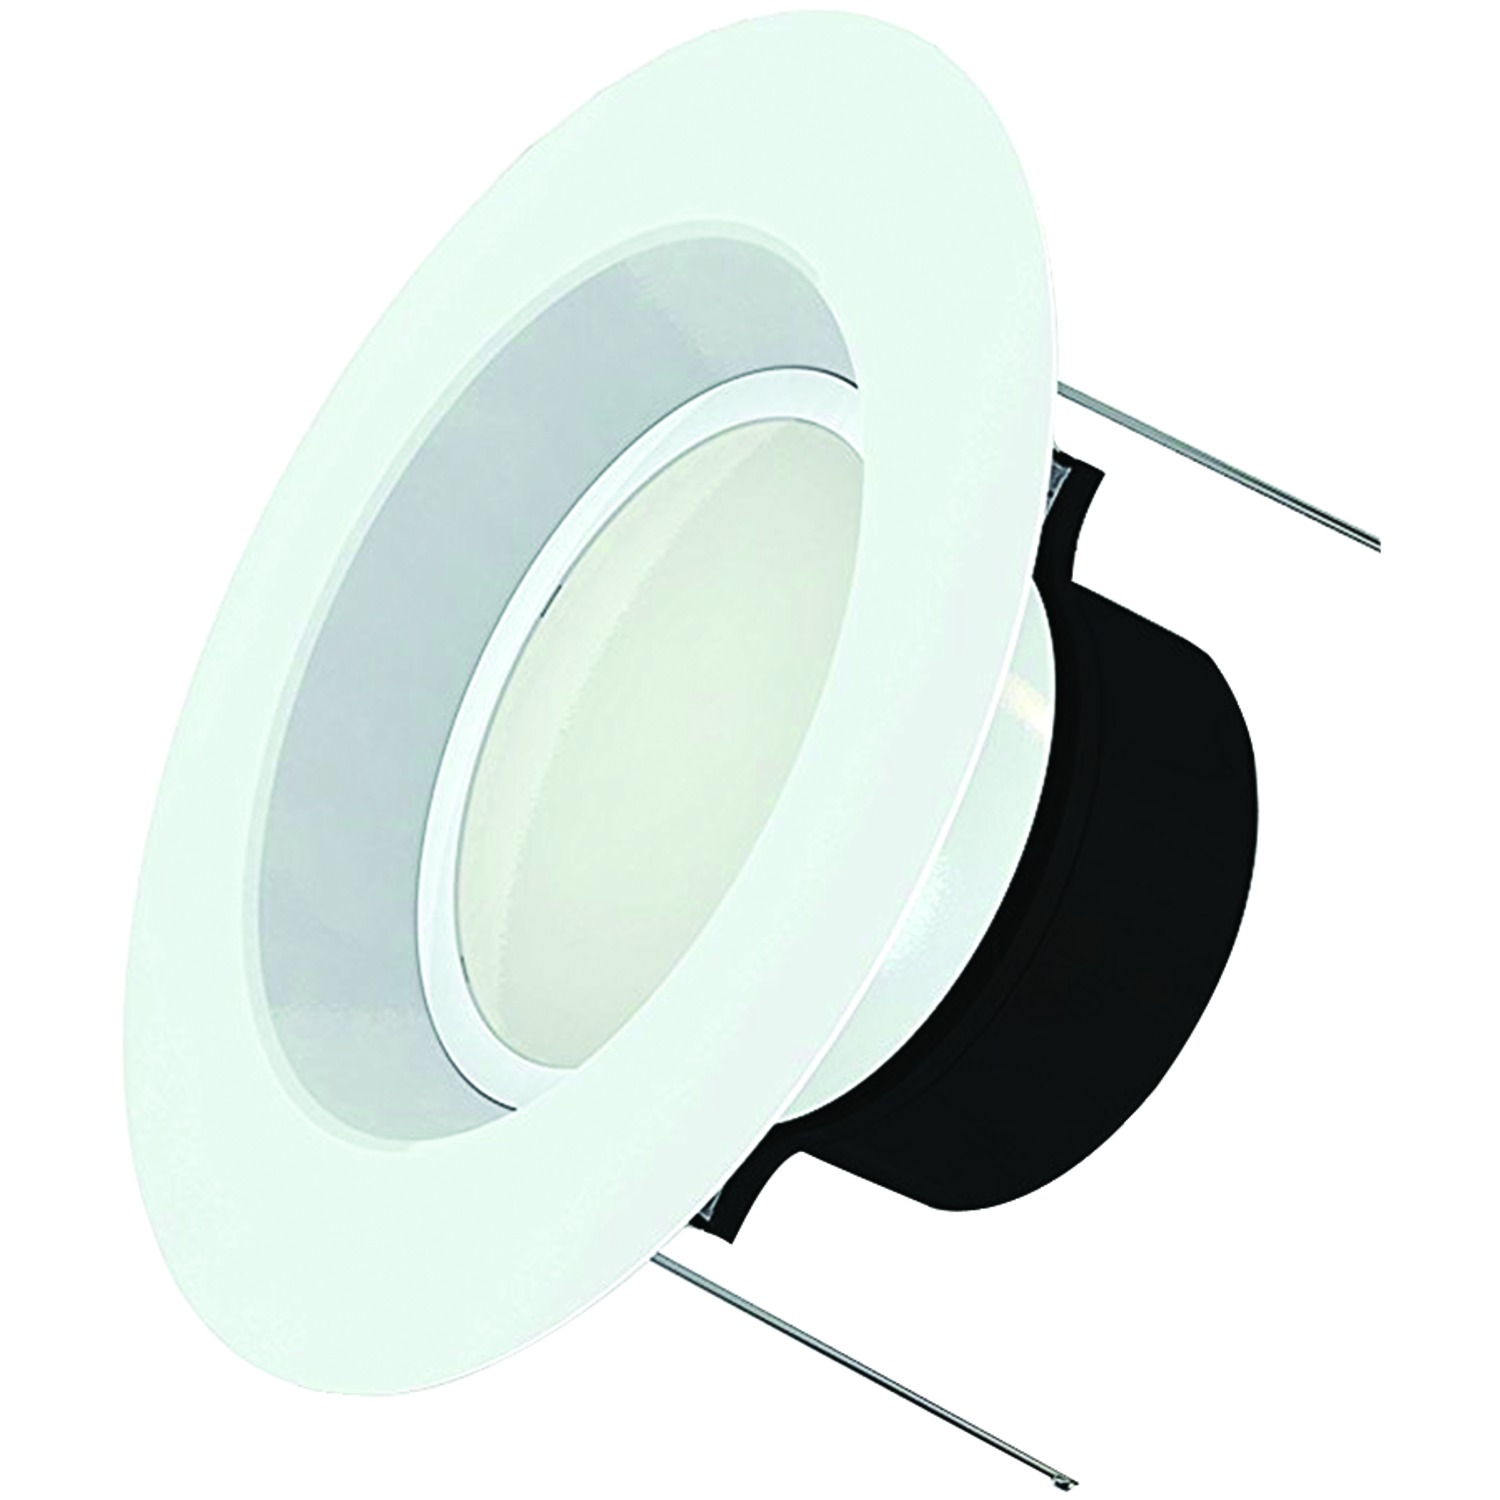 20 Watt Led Sleek Lighting 18678 Led Retrofit Kit 20 Watt 5